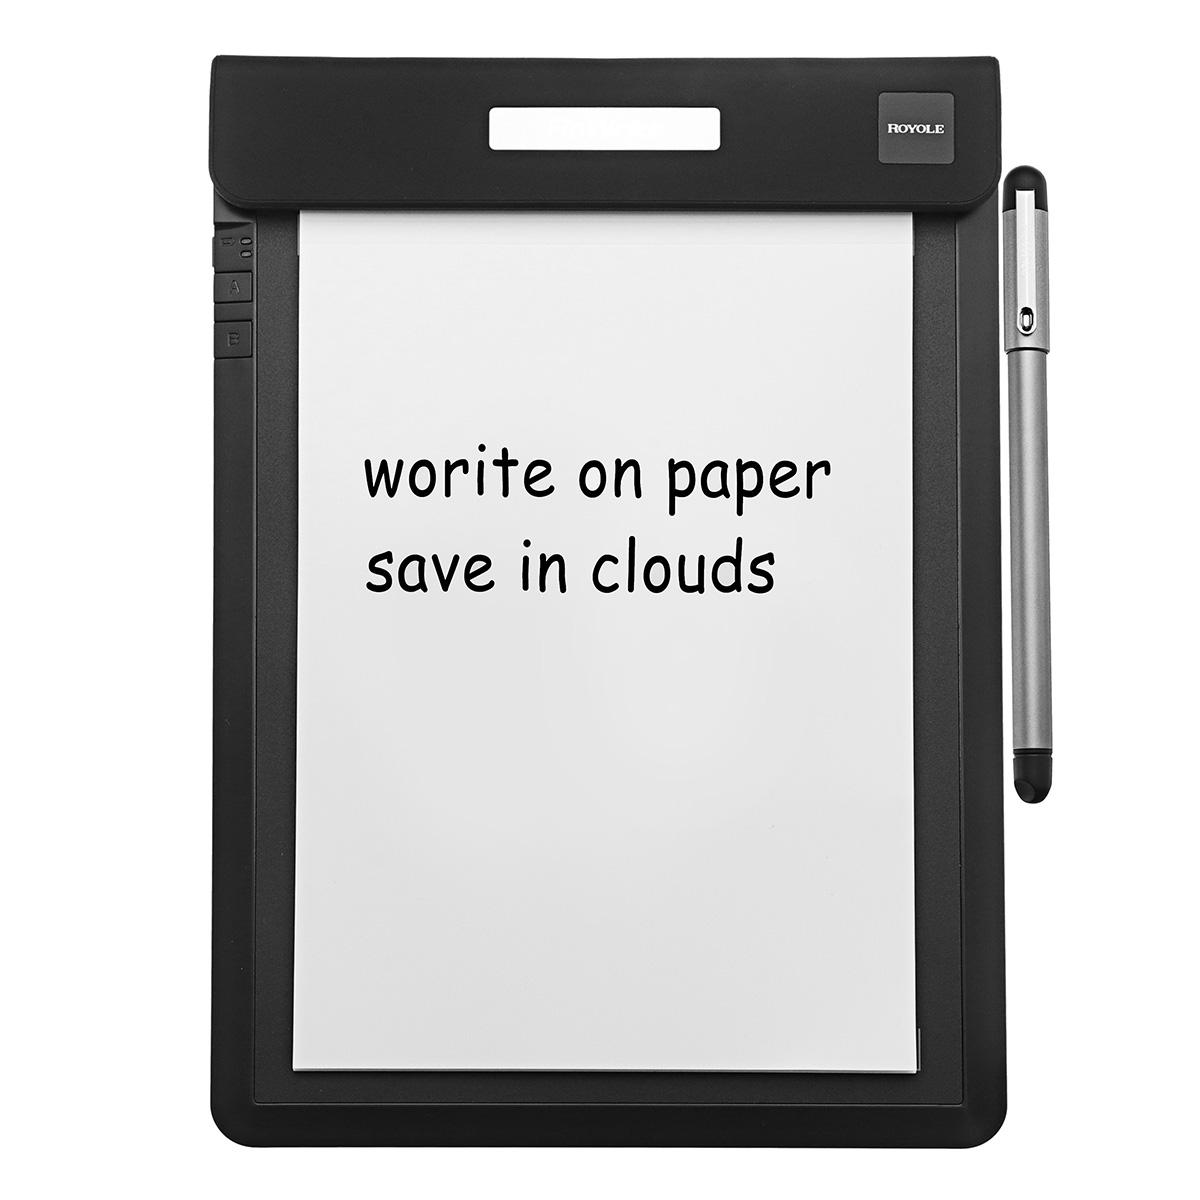 Royole 10Inch 2048 Level Pressure Digital Drawing Tablet Paper Writing Cloud Storage App With Pen